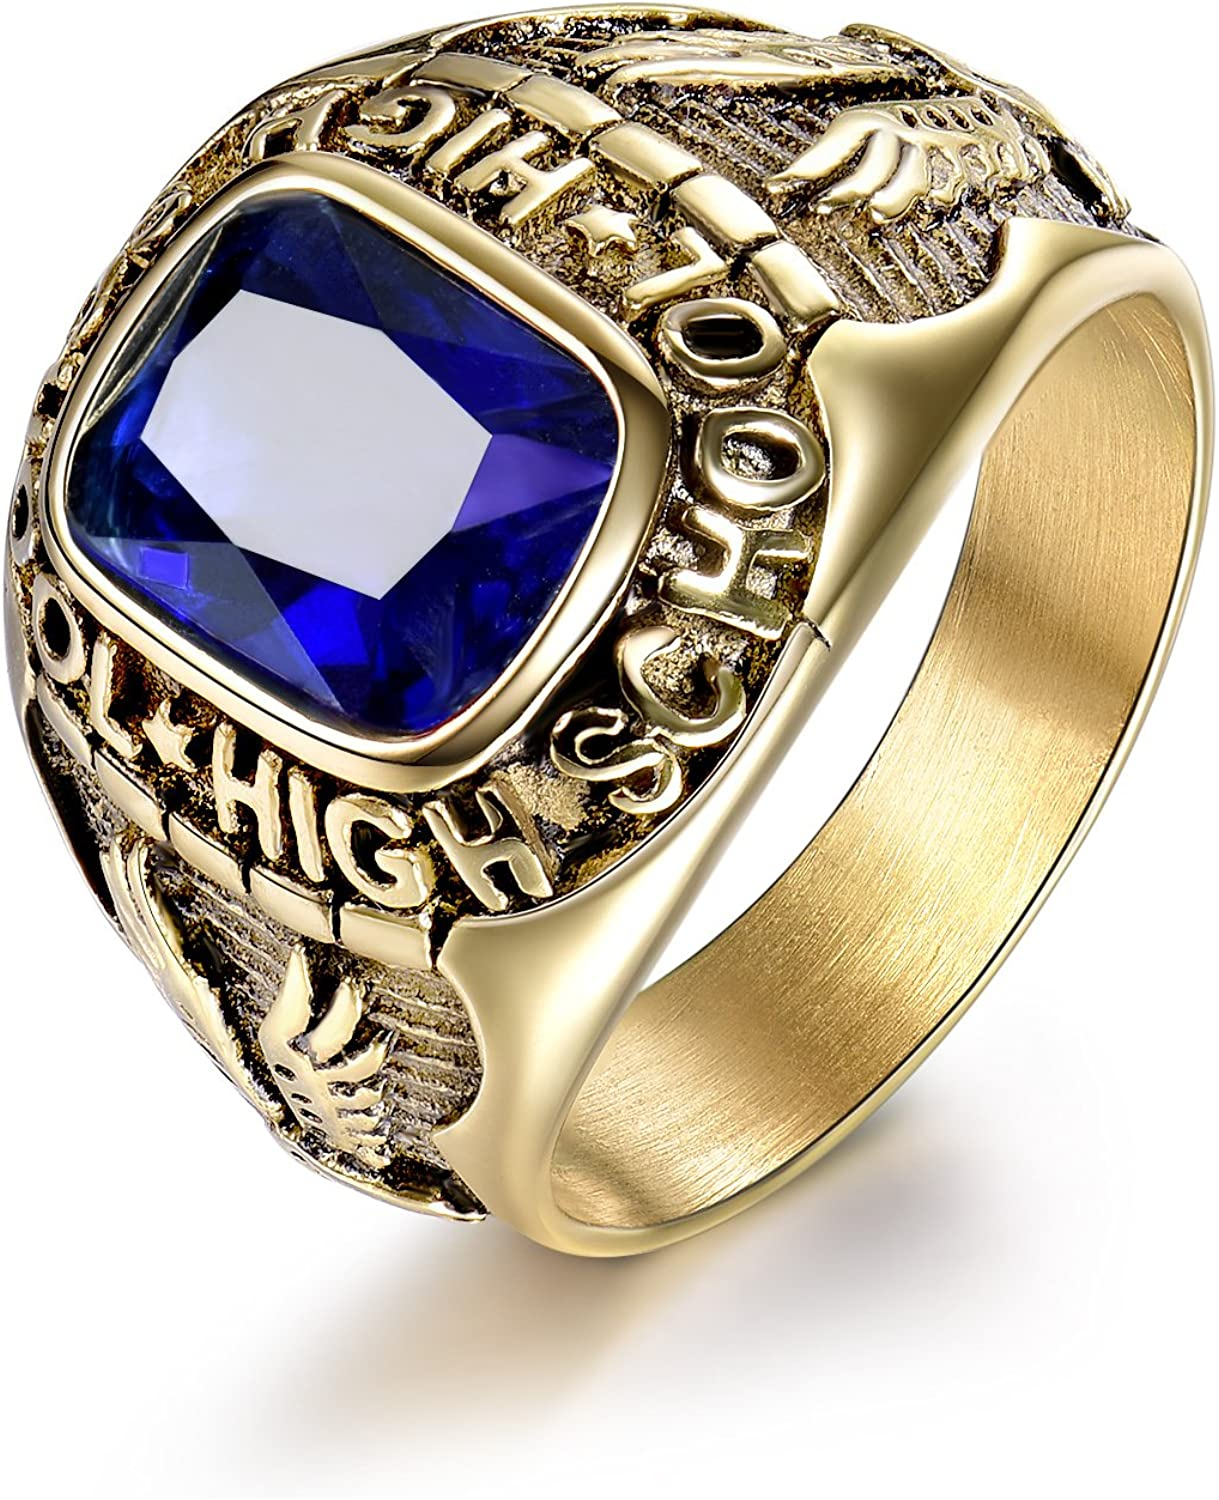 MASOP Royal Blue Sapphire Color Ring Stainless Steel Men Jewelry Celebrate High School Rings Size 8-15